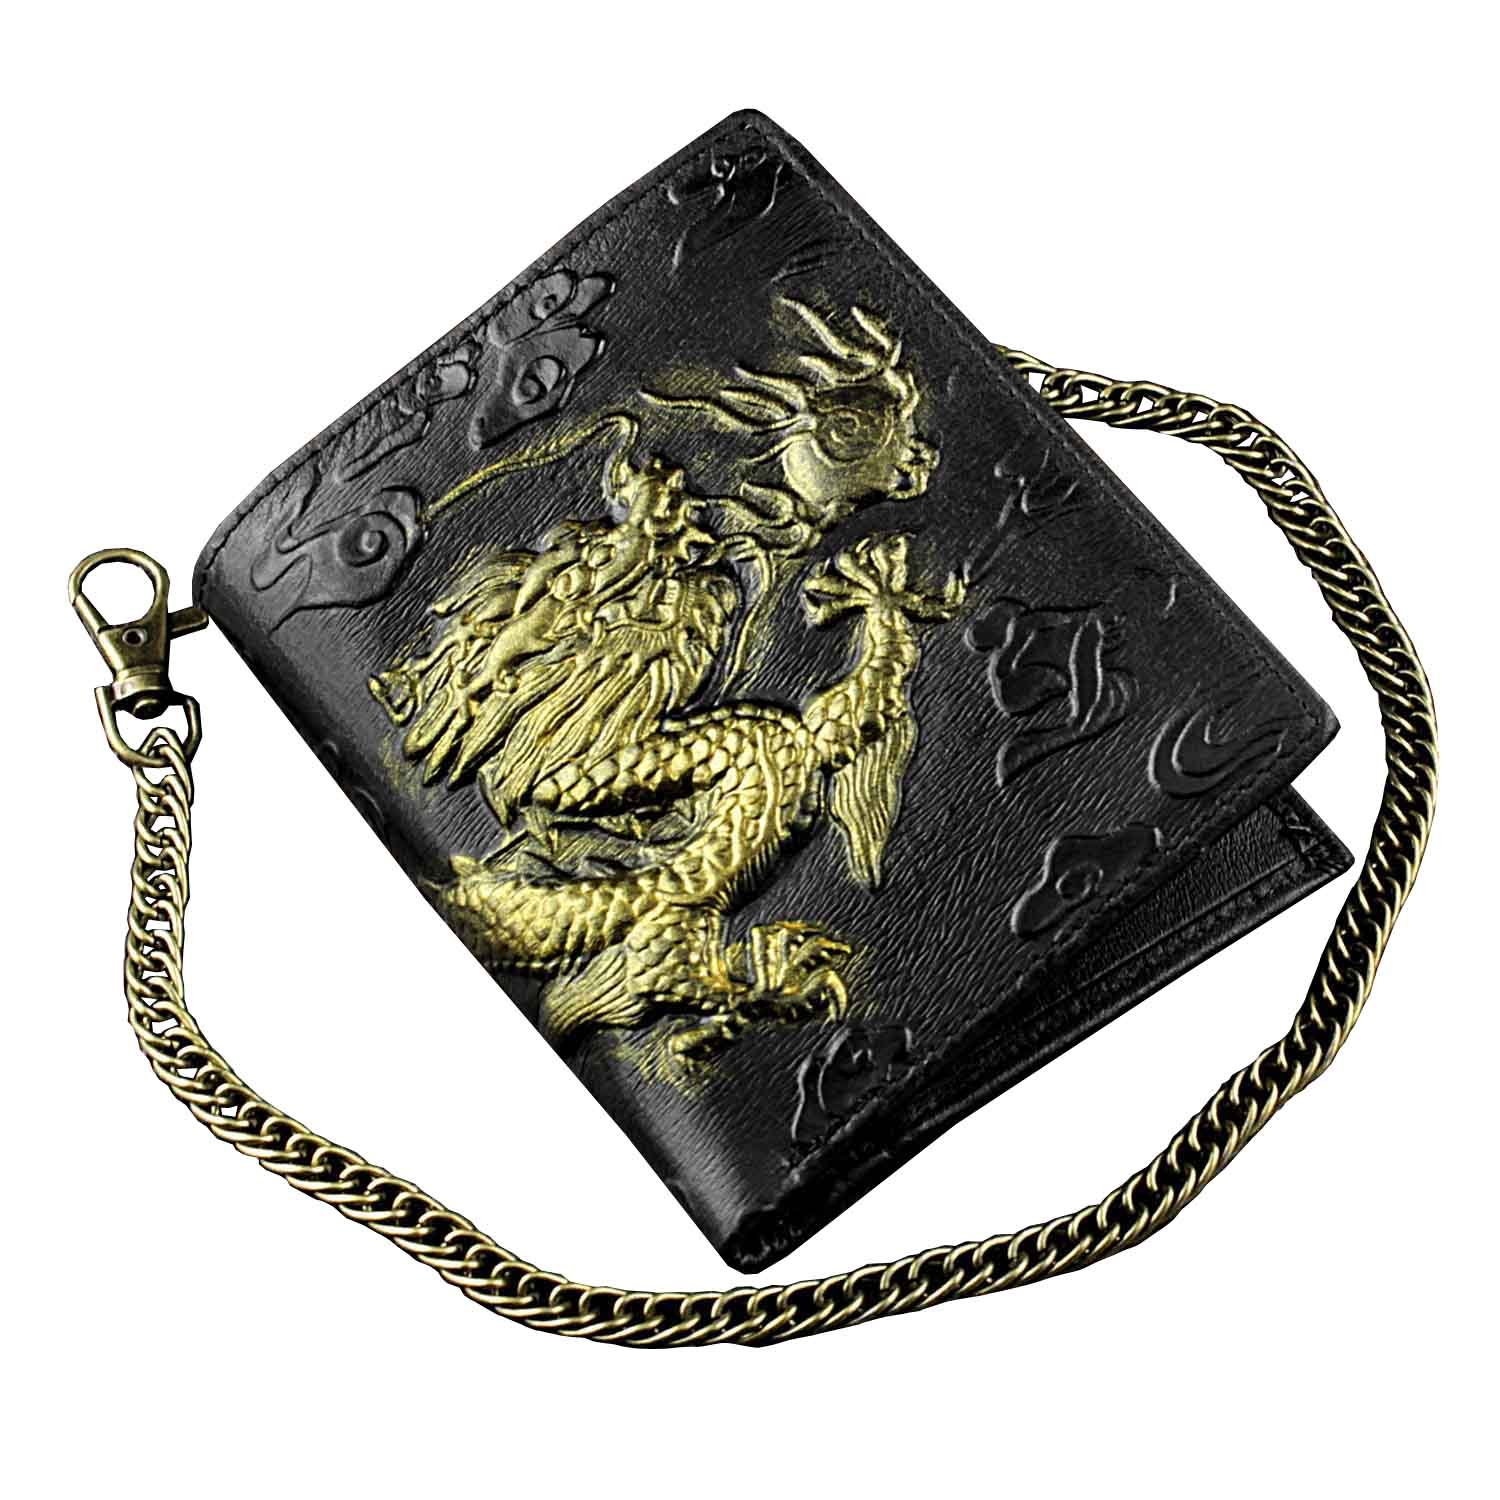 Mens 3D Dragon Vintage Luxury Leather Wallet ID Card Holder Purse w/ Chain